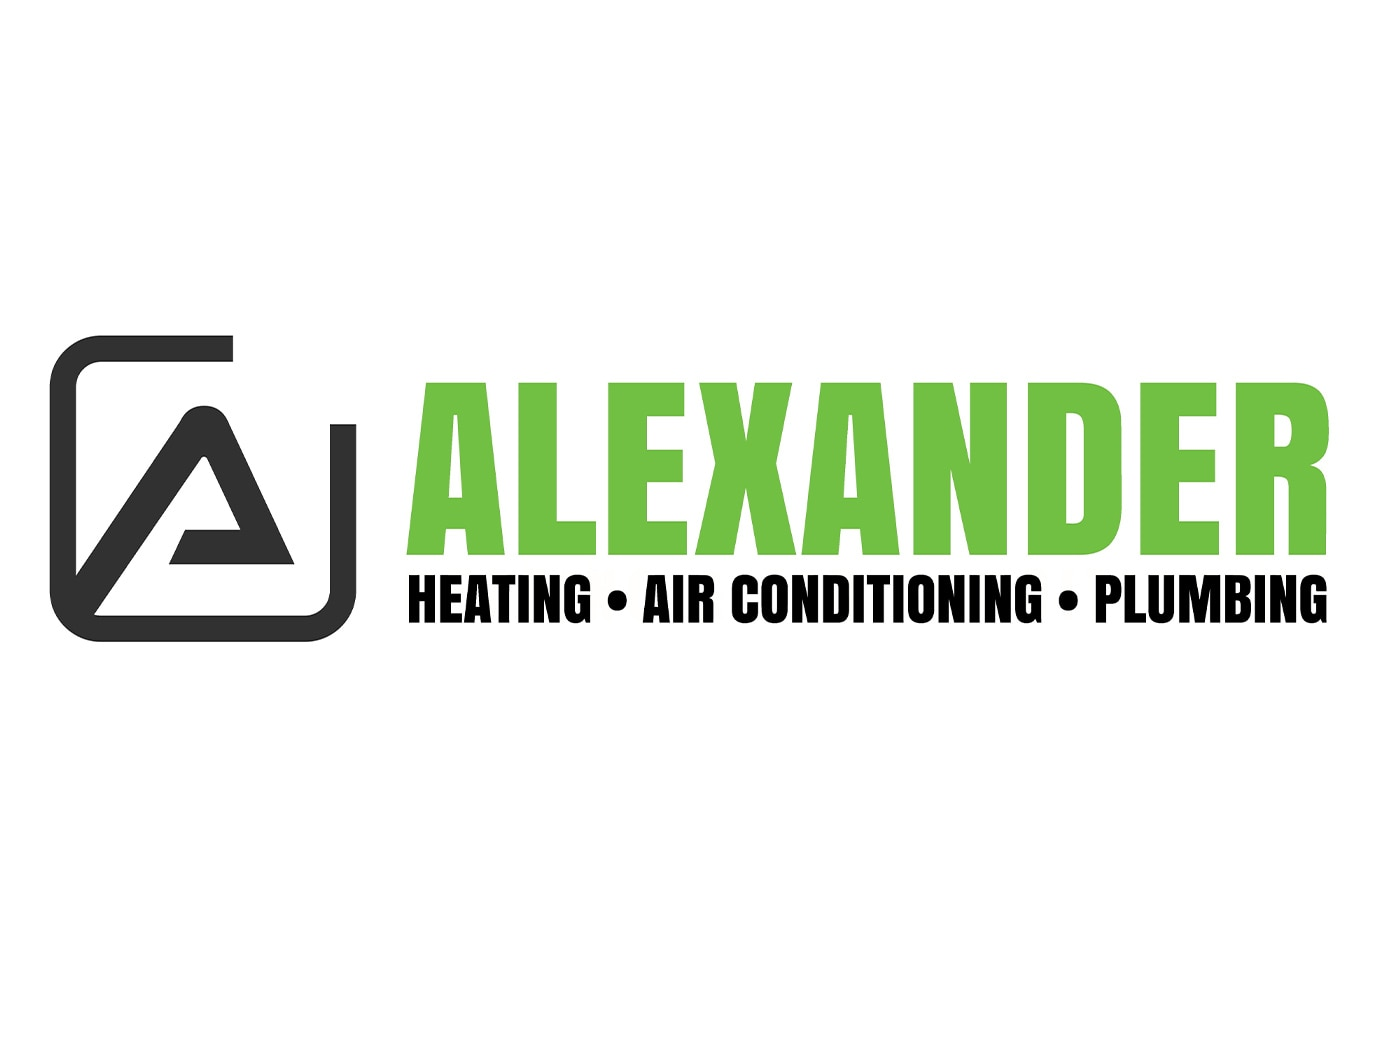 YORK® | Alexander Heating Air Conditioning and Plumbing